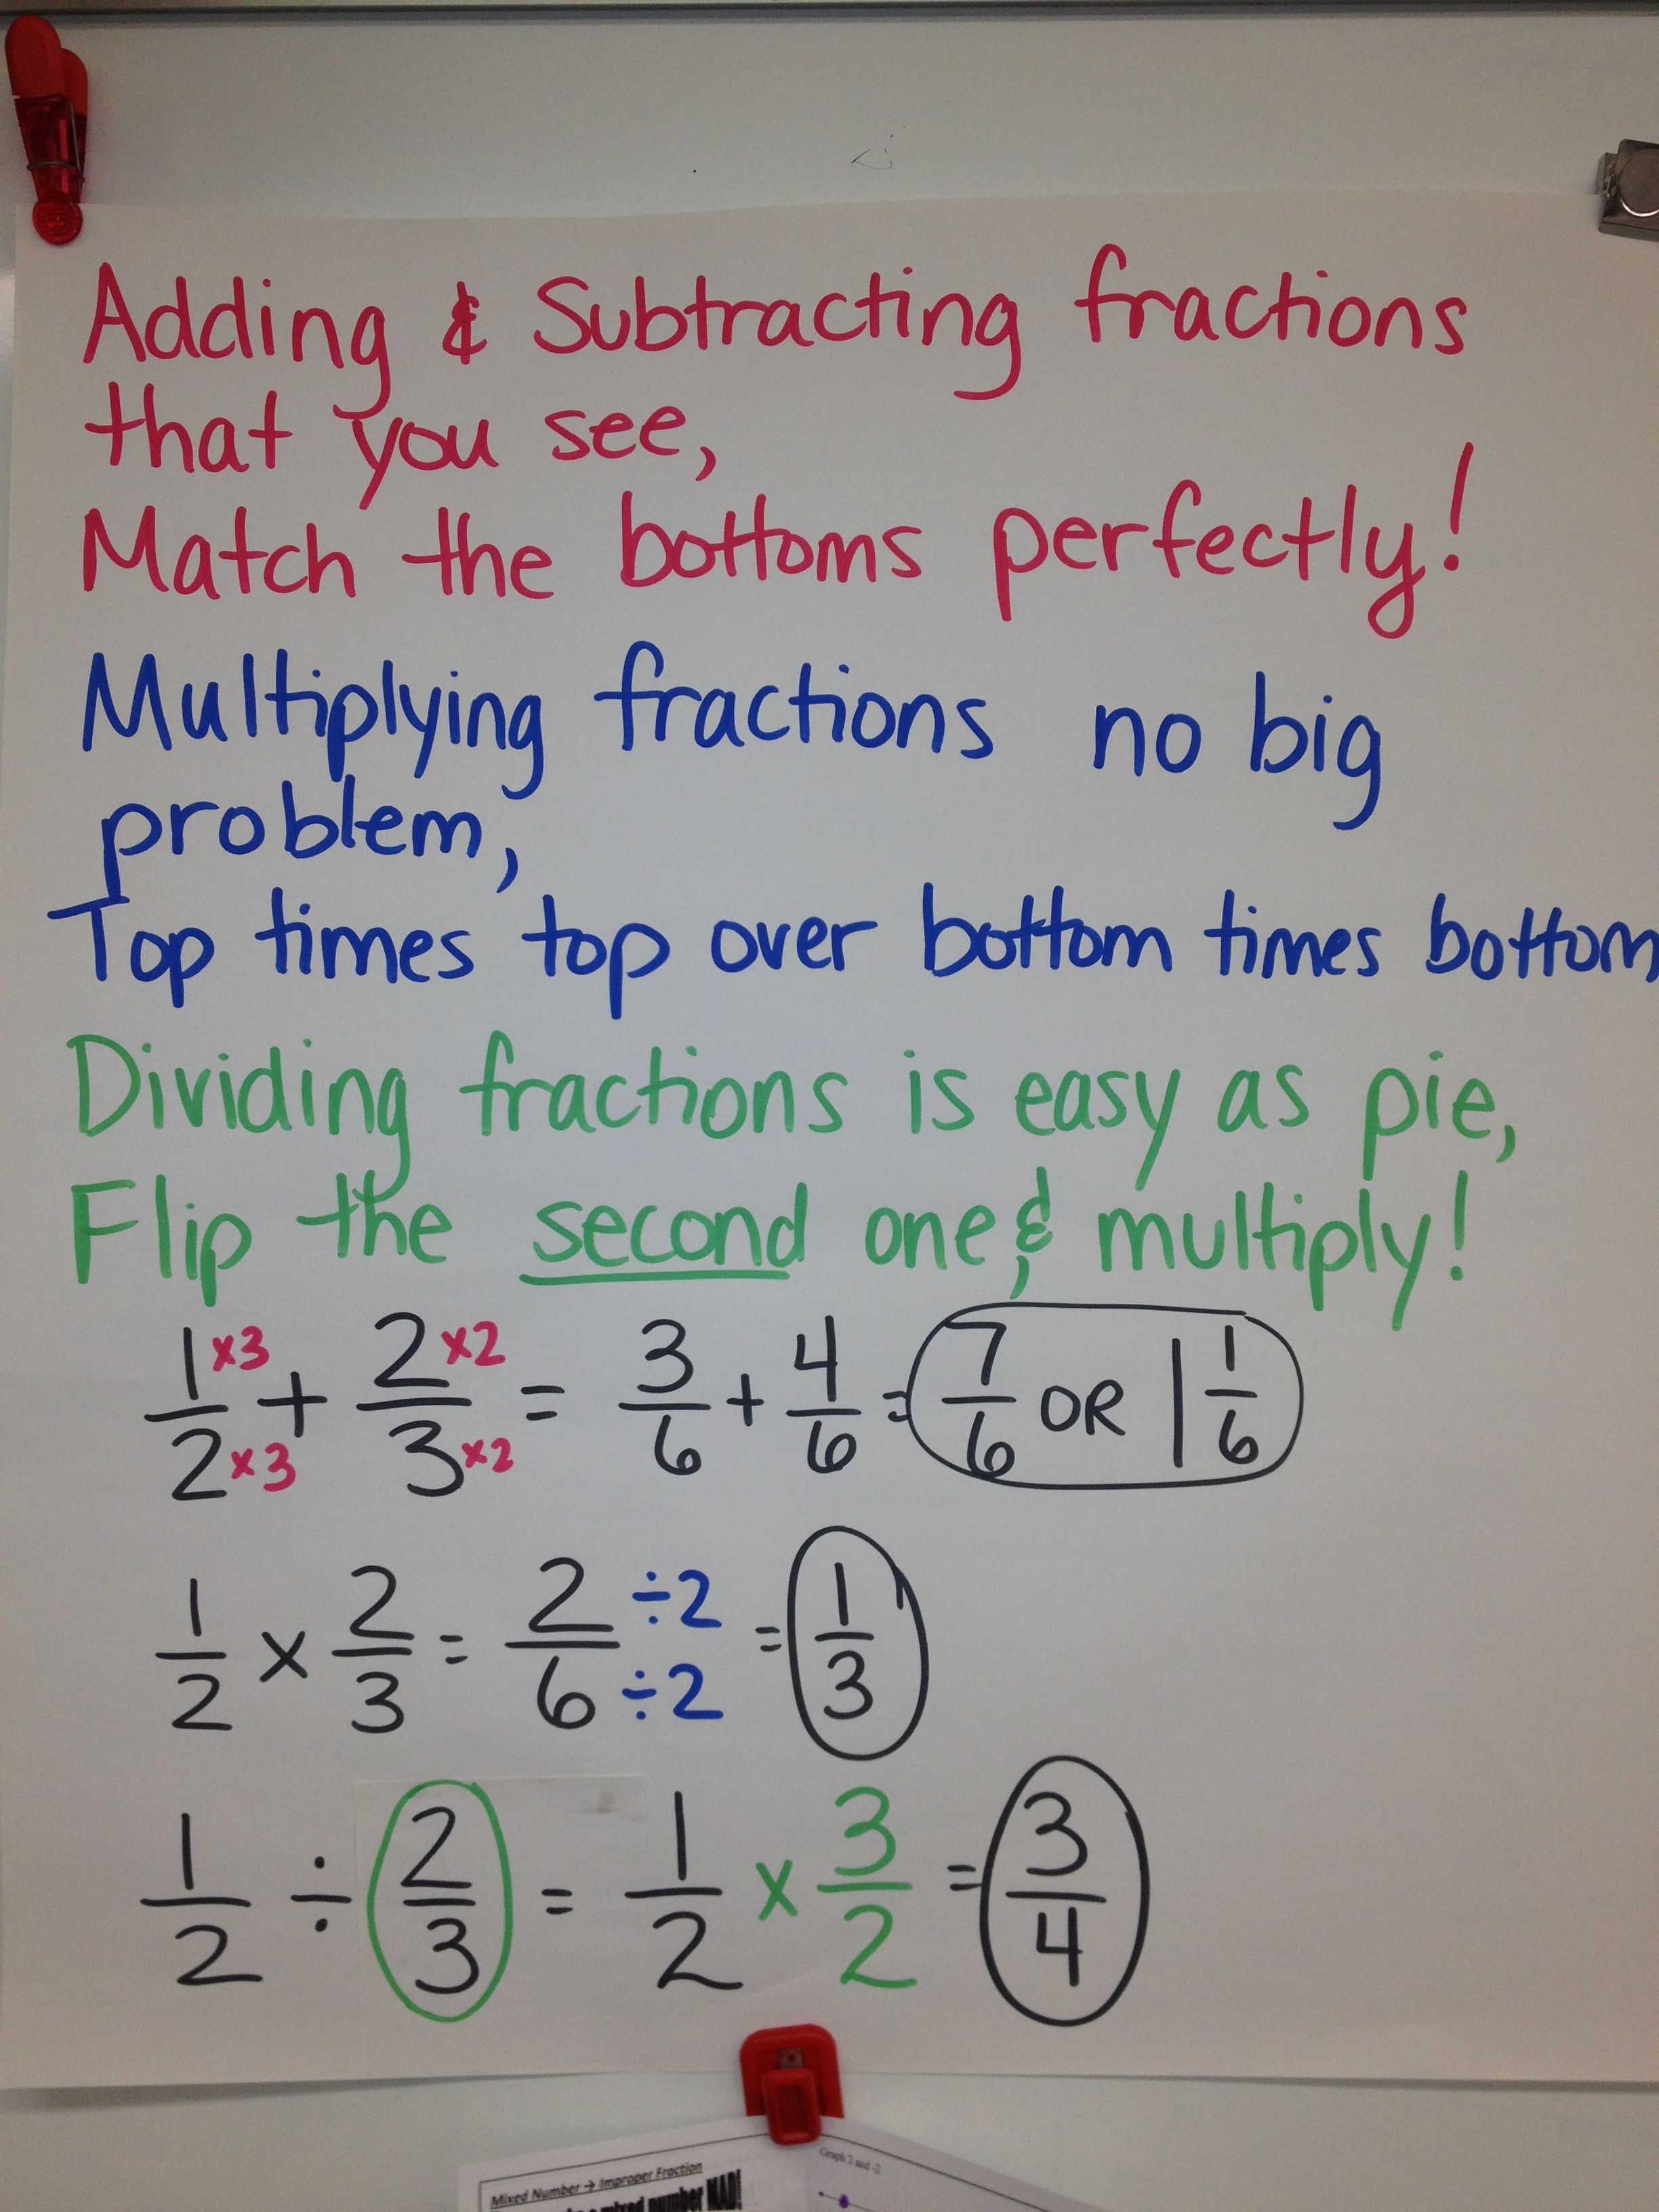 the denominator of a fraction is two fractions is 3